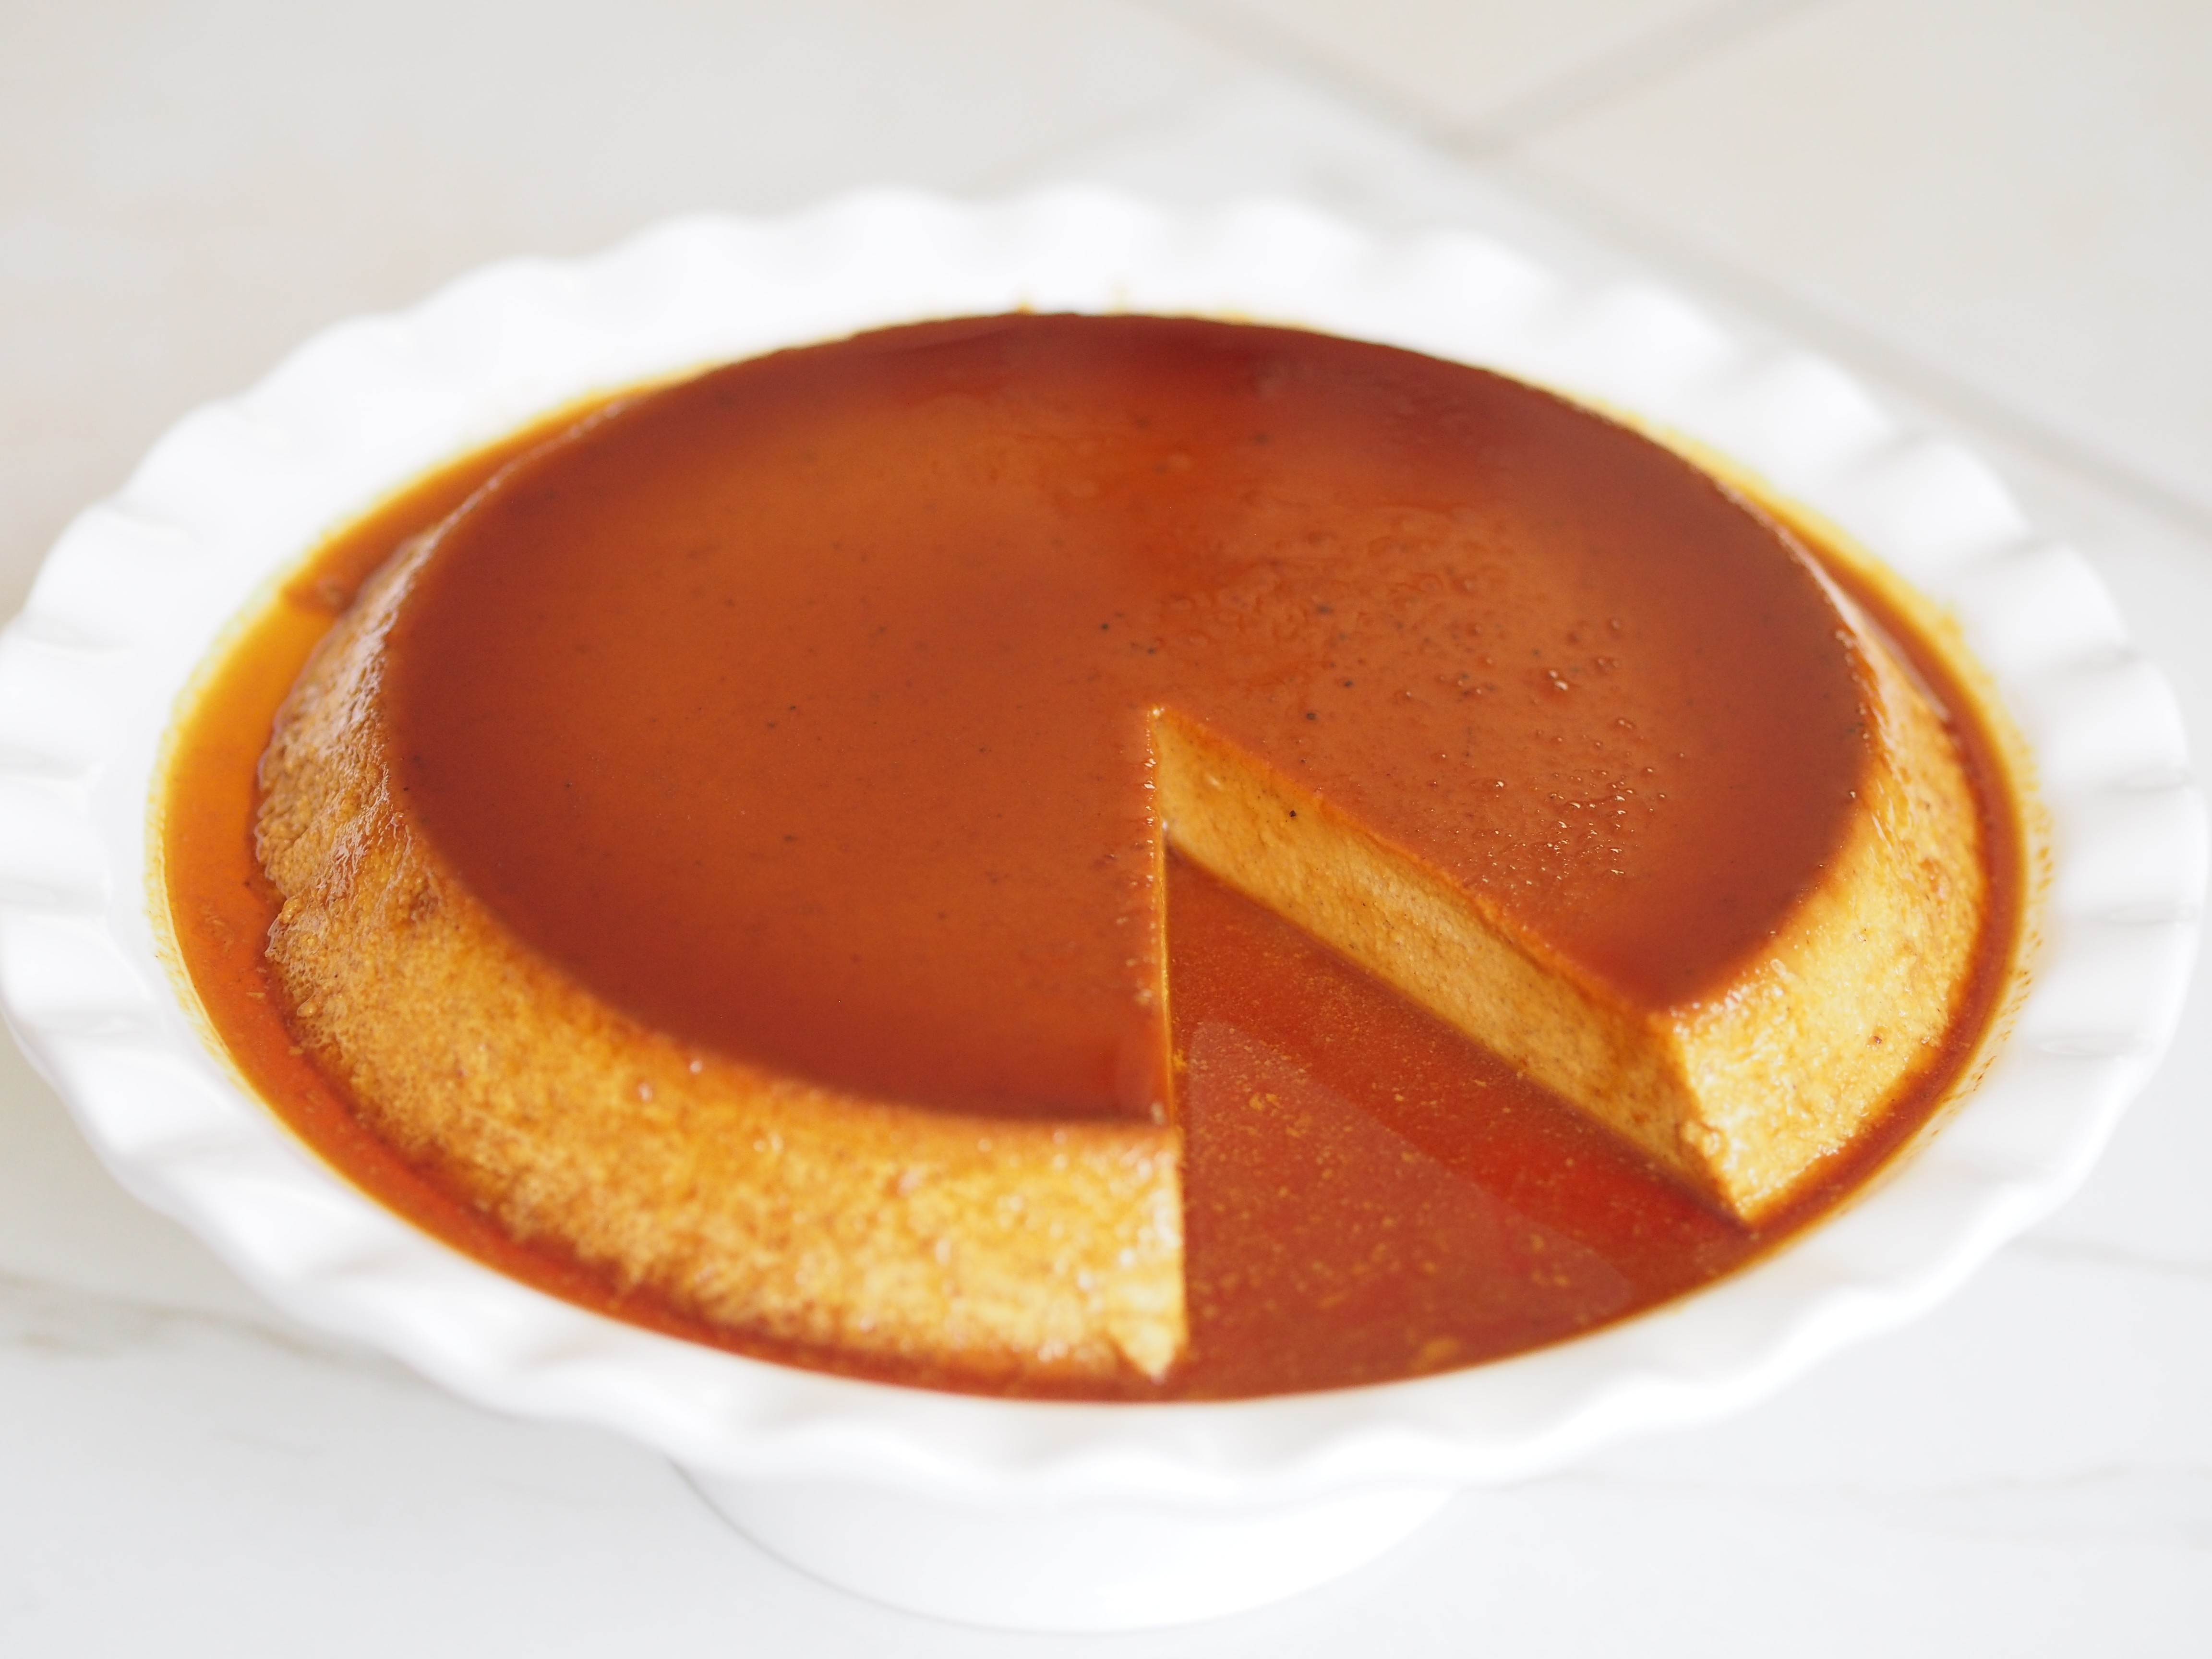 pumpkin flan with a slice cut out